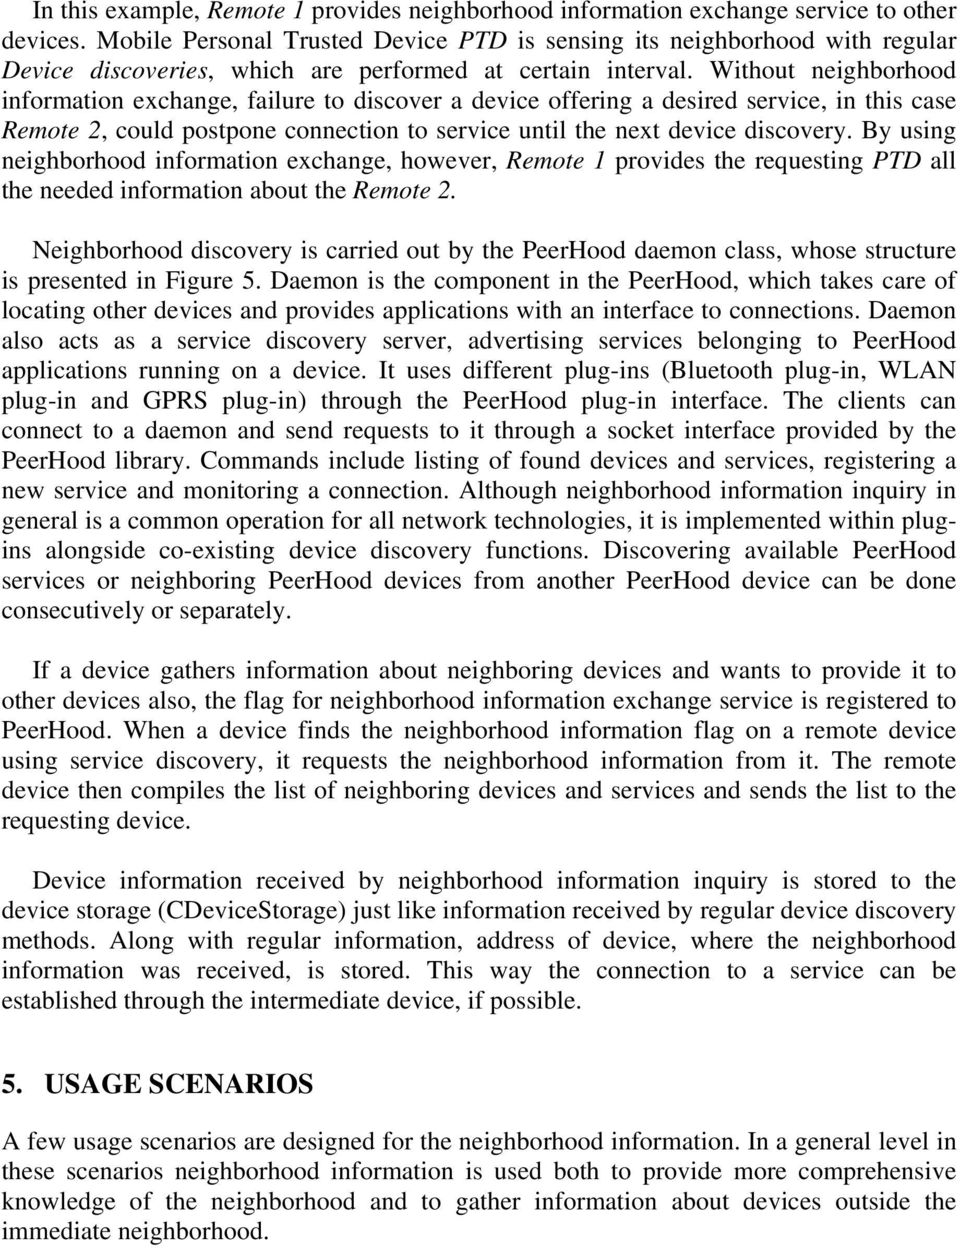 Without neighborhood information exchange, failure to discover a device offering a desired service, in this case Remote 2, could postpone connection to service until the next device discovery.